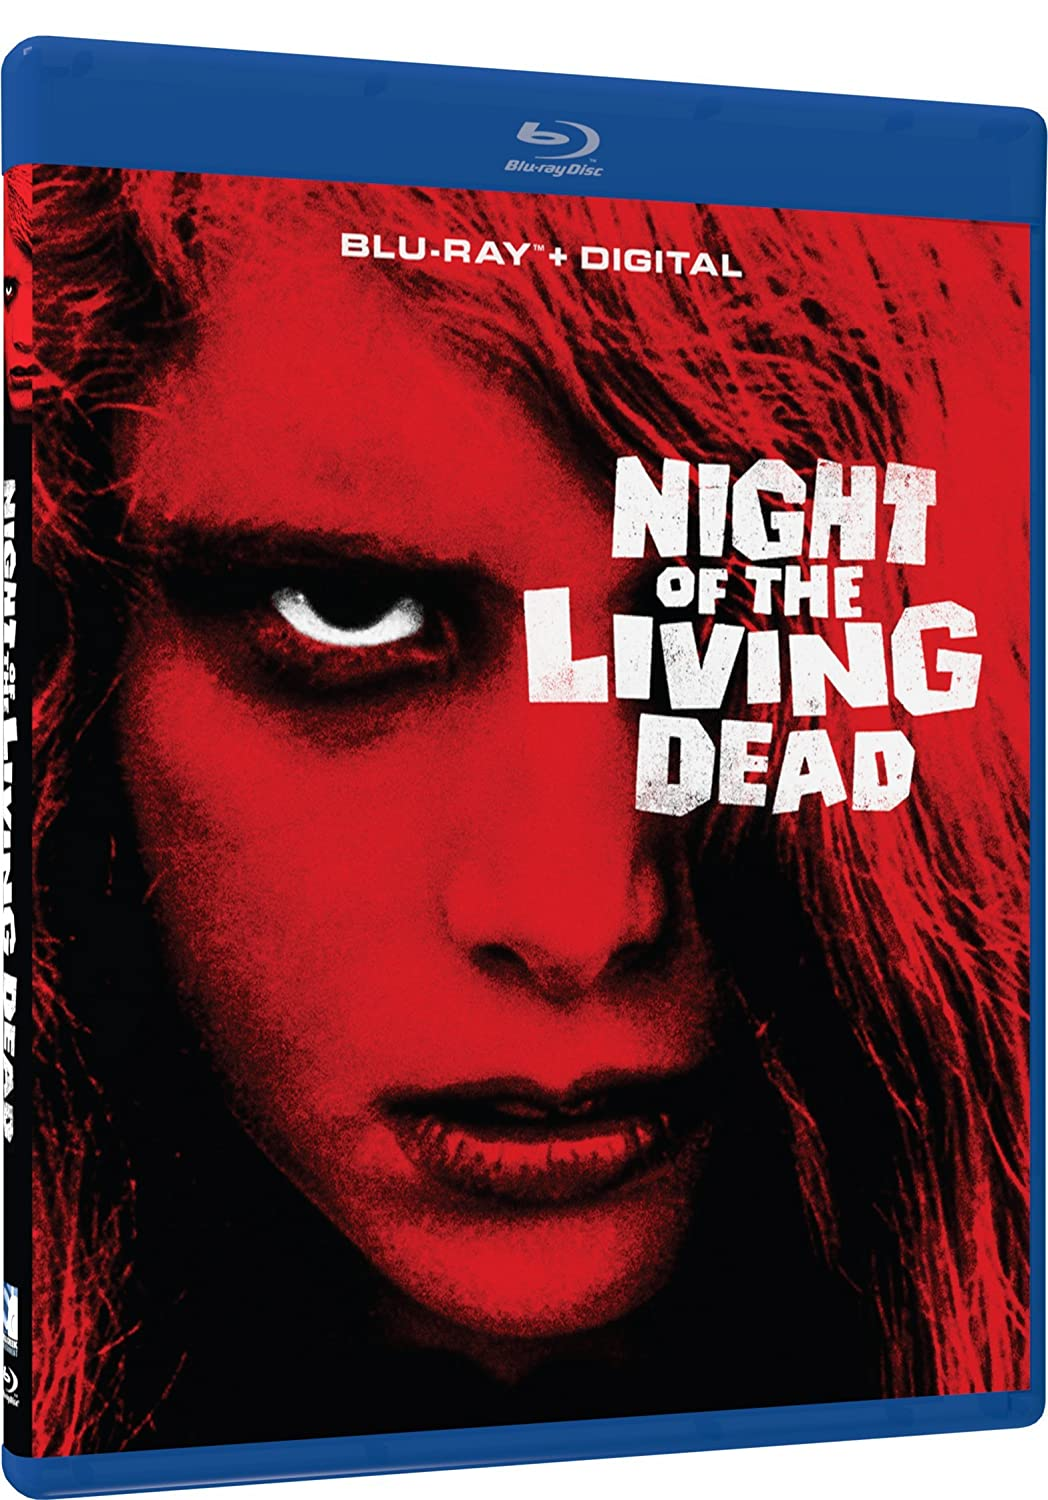 Night of the Living Dead - 50th Anniversary Digital